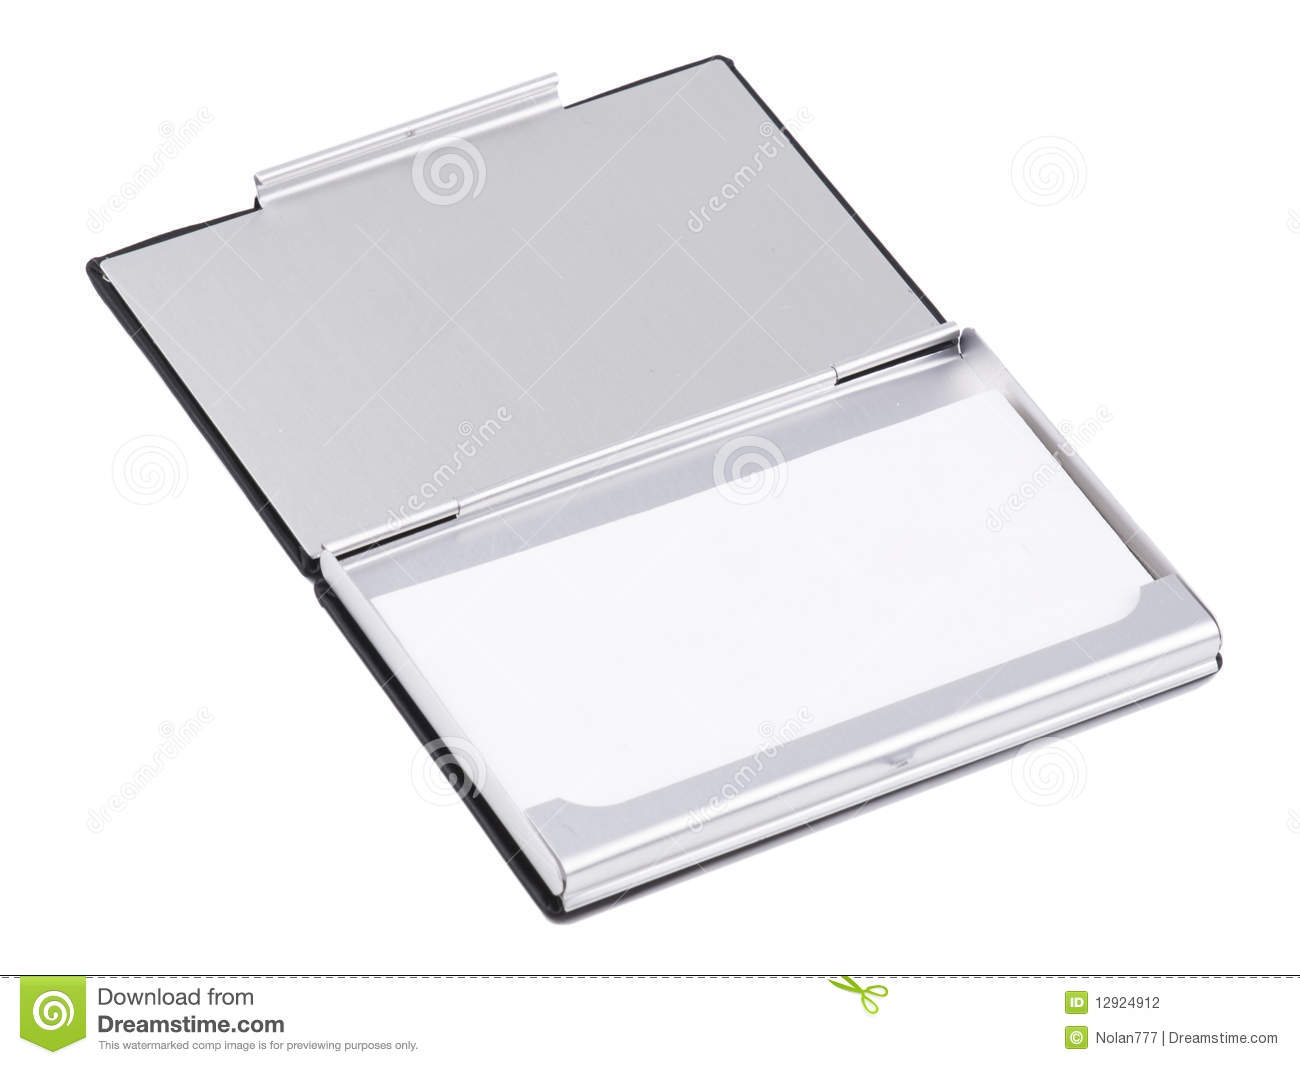 Boxes for business cards choice image free business cards box for business cards stock photo image of case single 12924912 box for business cards magicingreecefo magicingreecefo Images